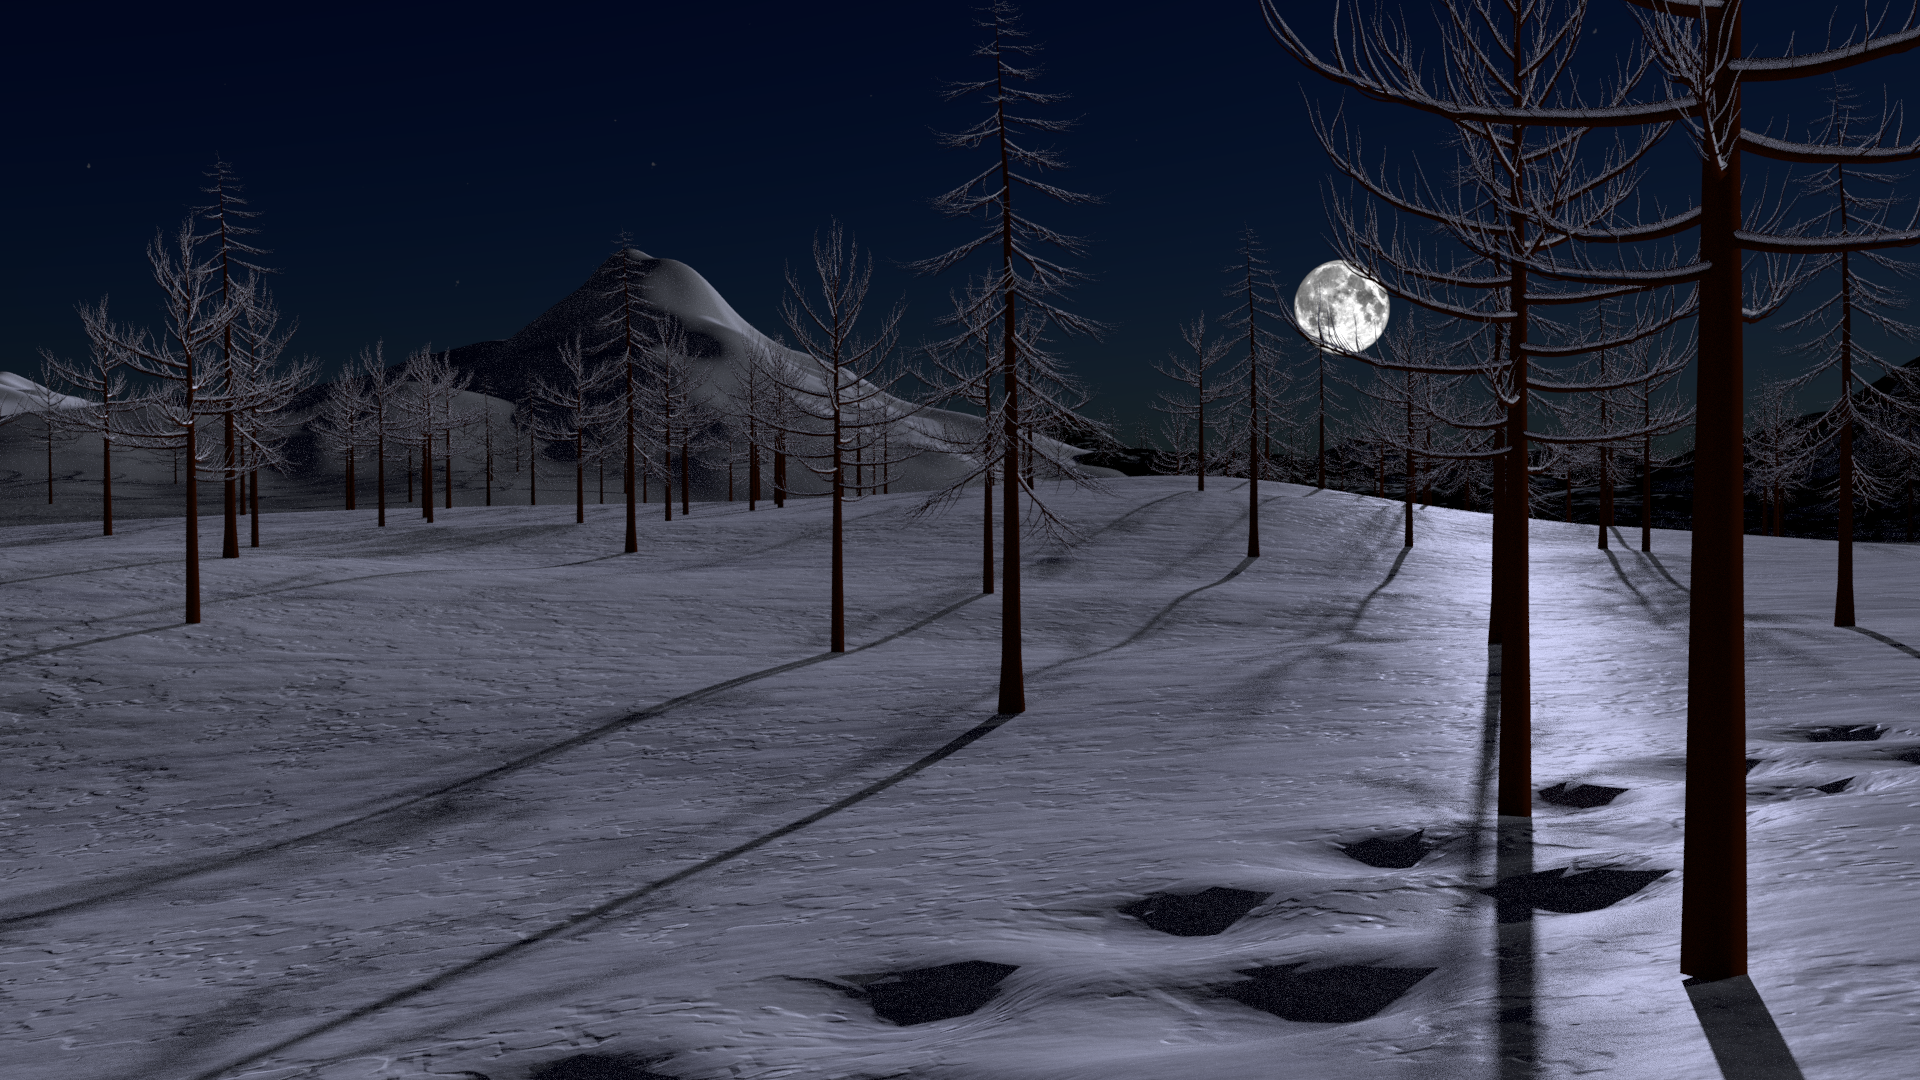 Snowy Night Scene preview image 1